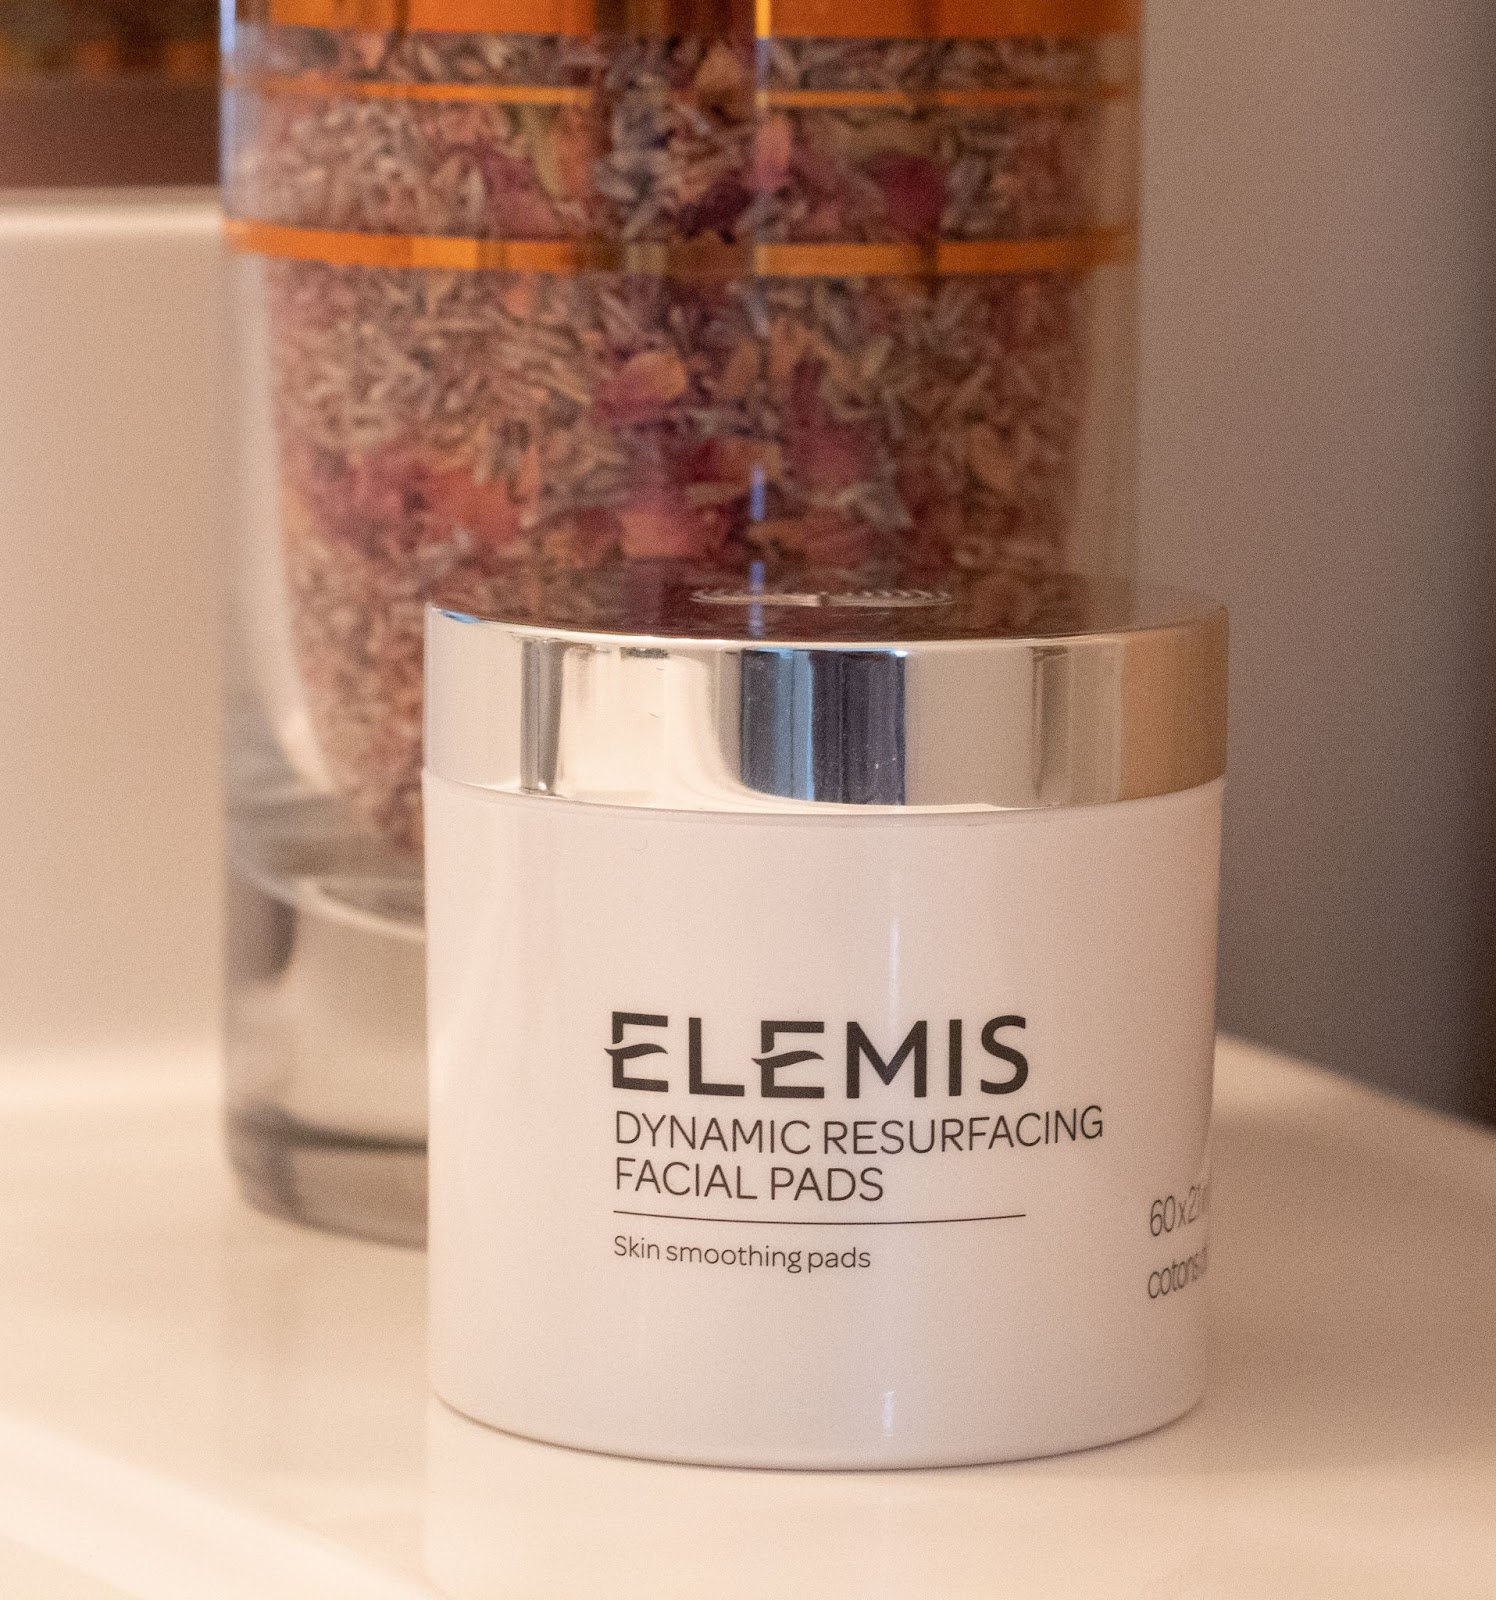 ELEMIS Skin Care Product Review - Dynamic Resurfacing Facial Pads - Patience & Pearls